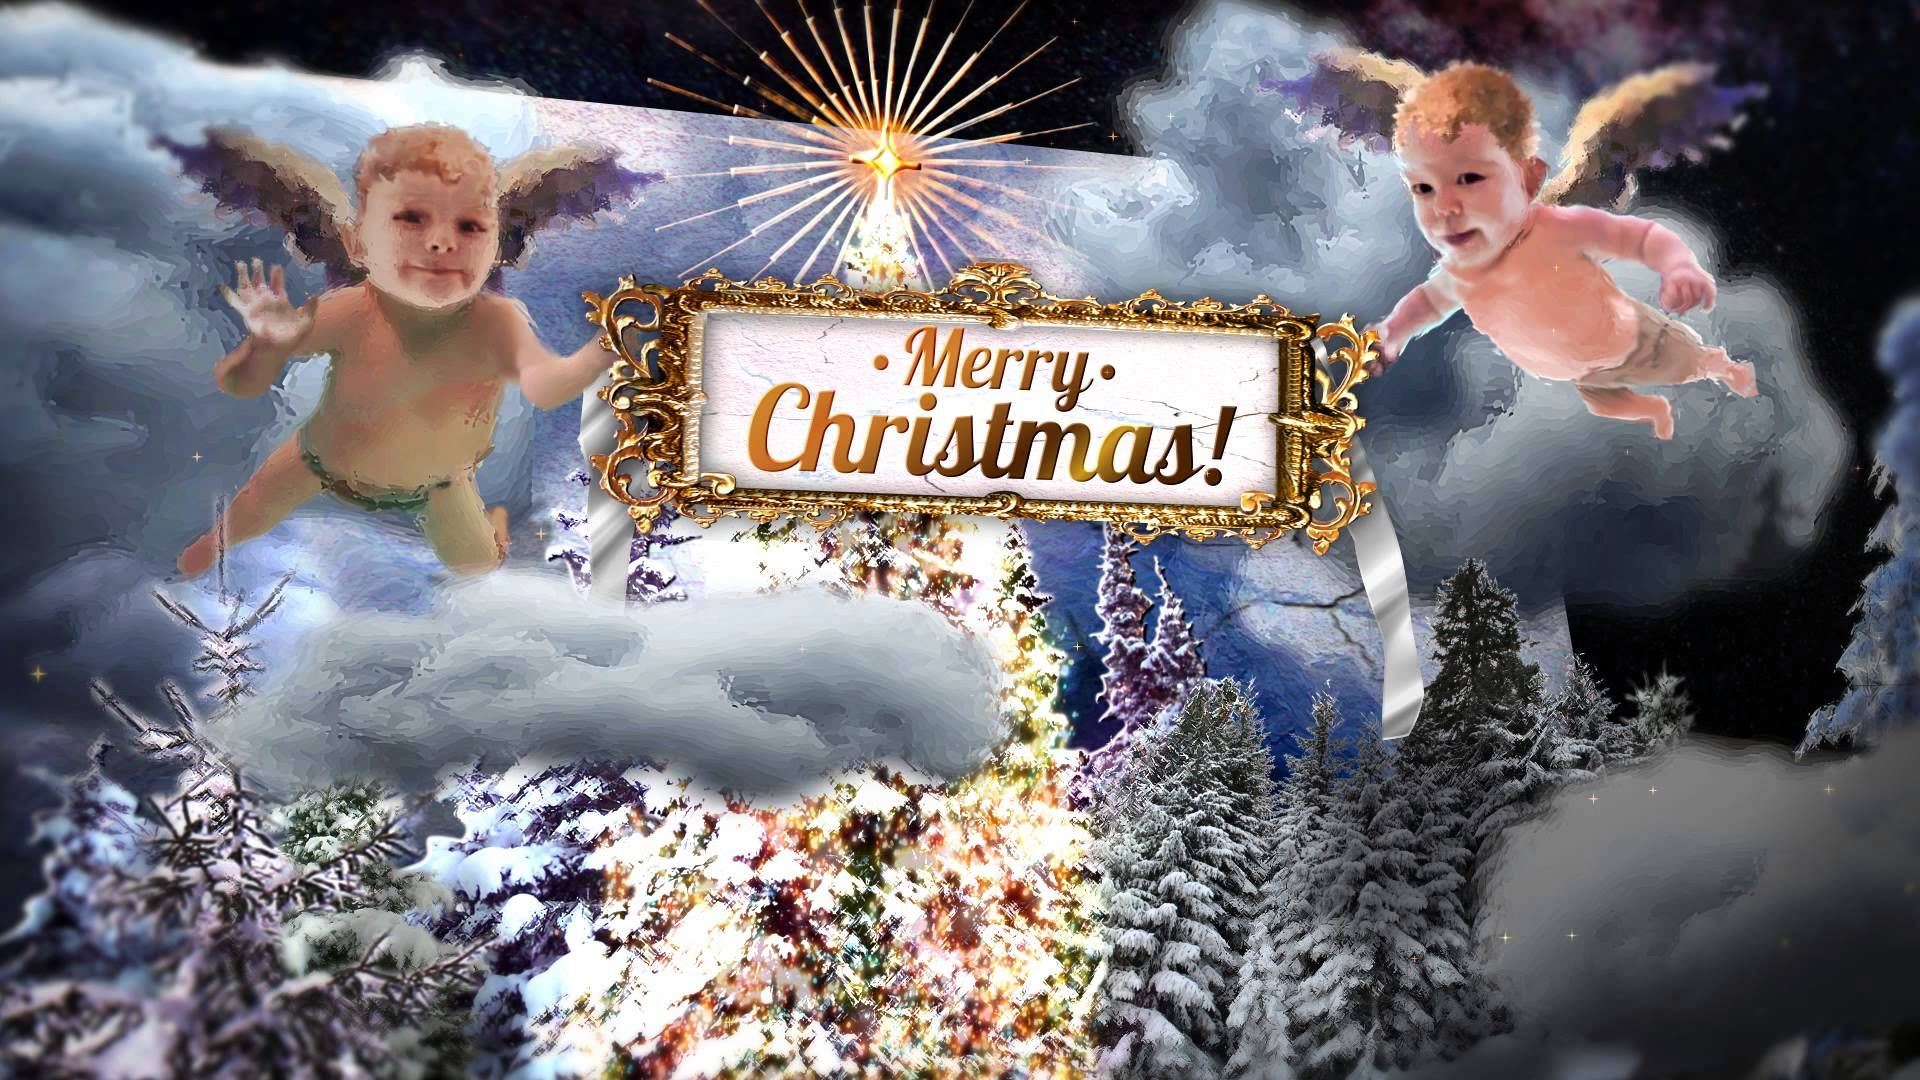 Christmas Angels Pop Up Card After Effects Template Project Christmas Angels Very Merry Christmas Christmas